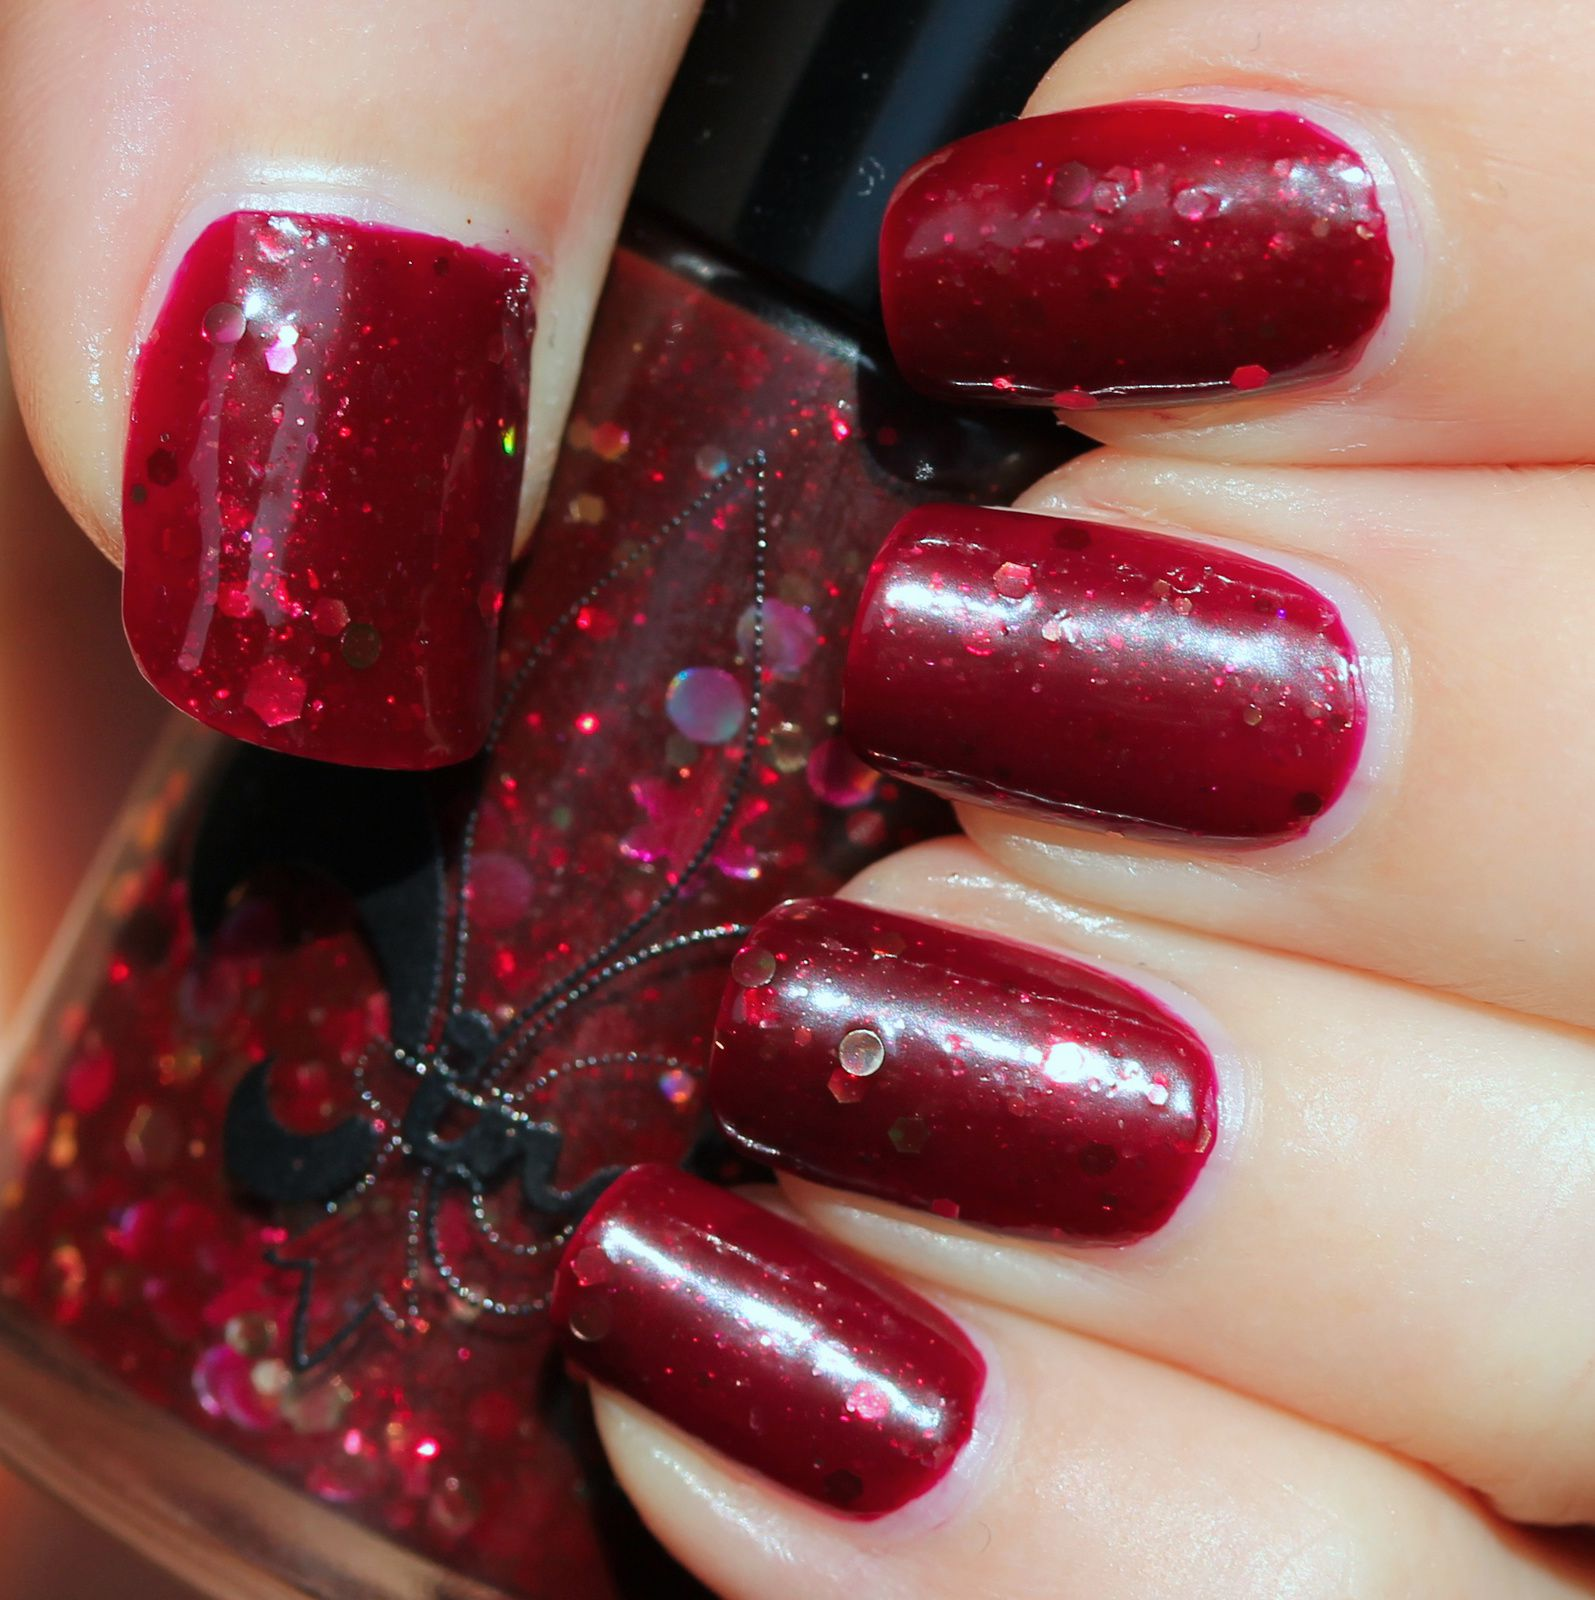 Jindie Nails Red Velvet Revolver (2 coats, no top coat)